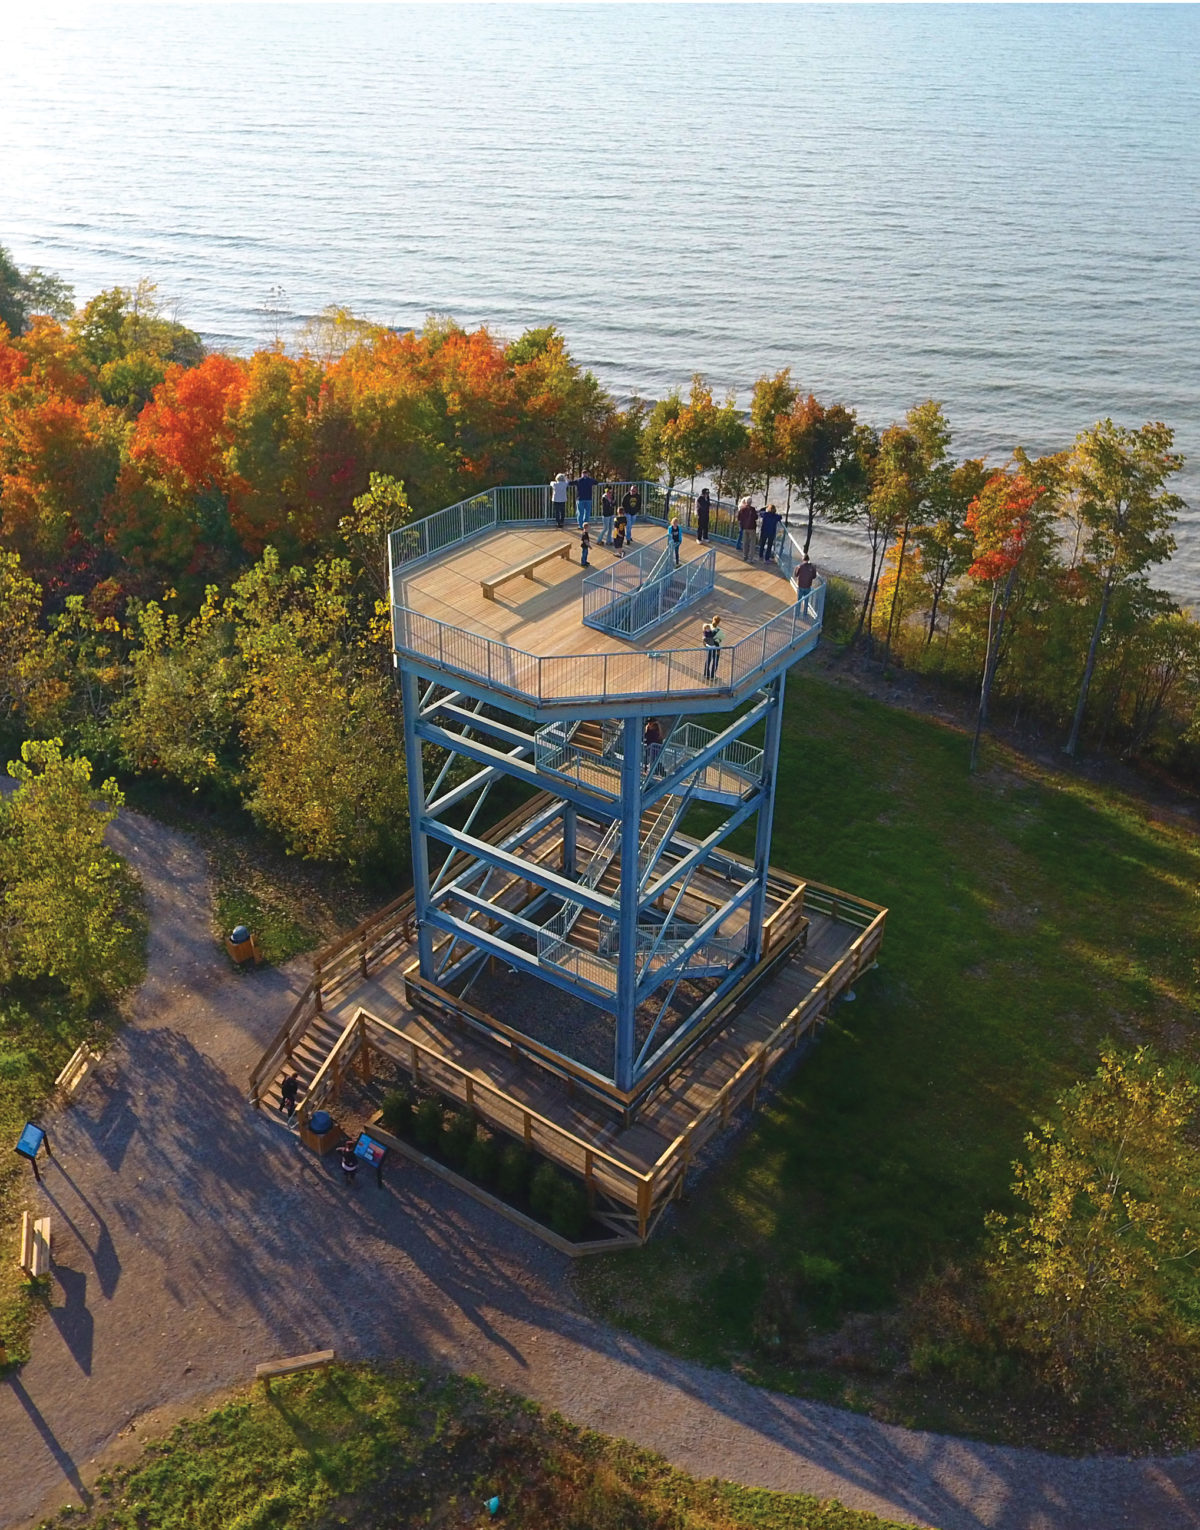 Lake-Erie-Bluffs-Observation-Tower-1200x1530.jpg